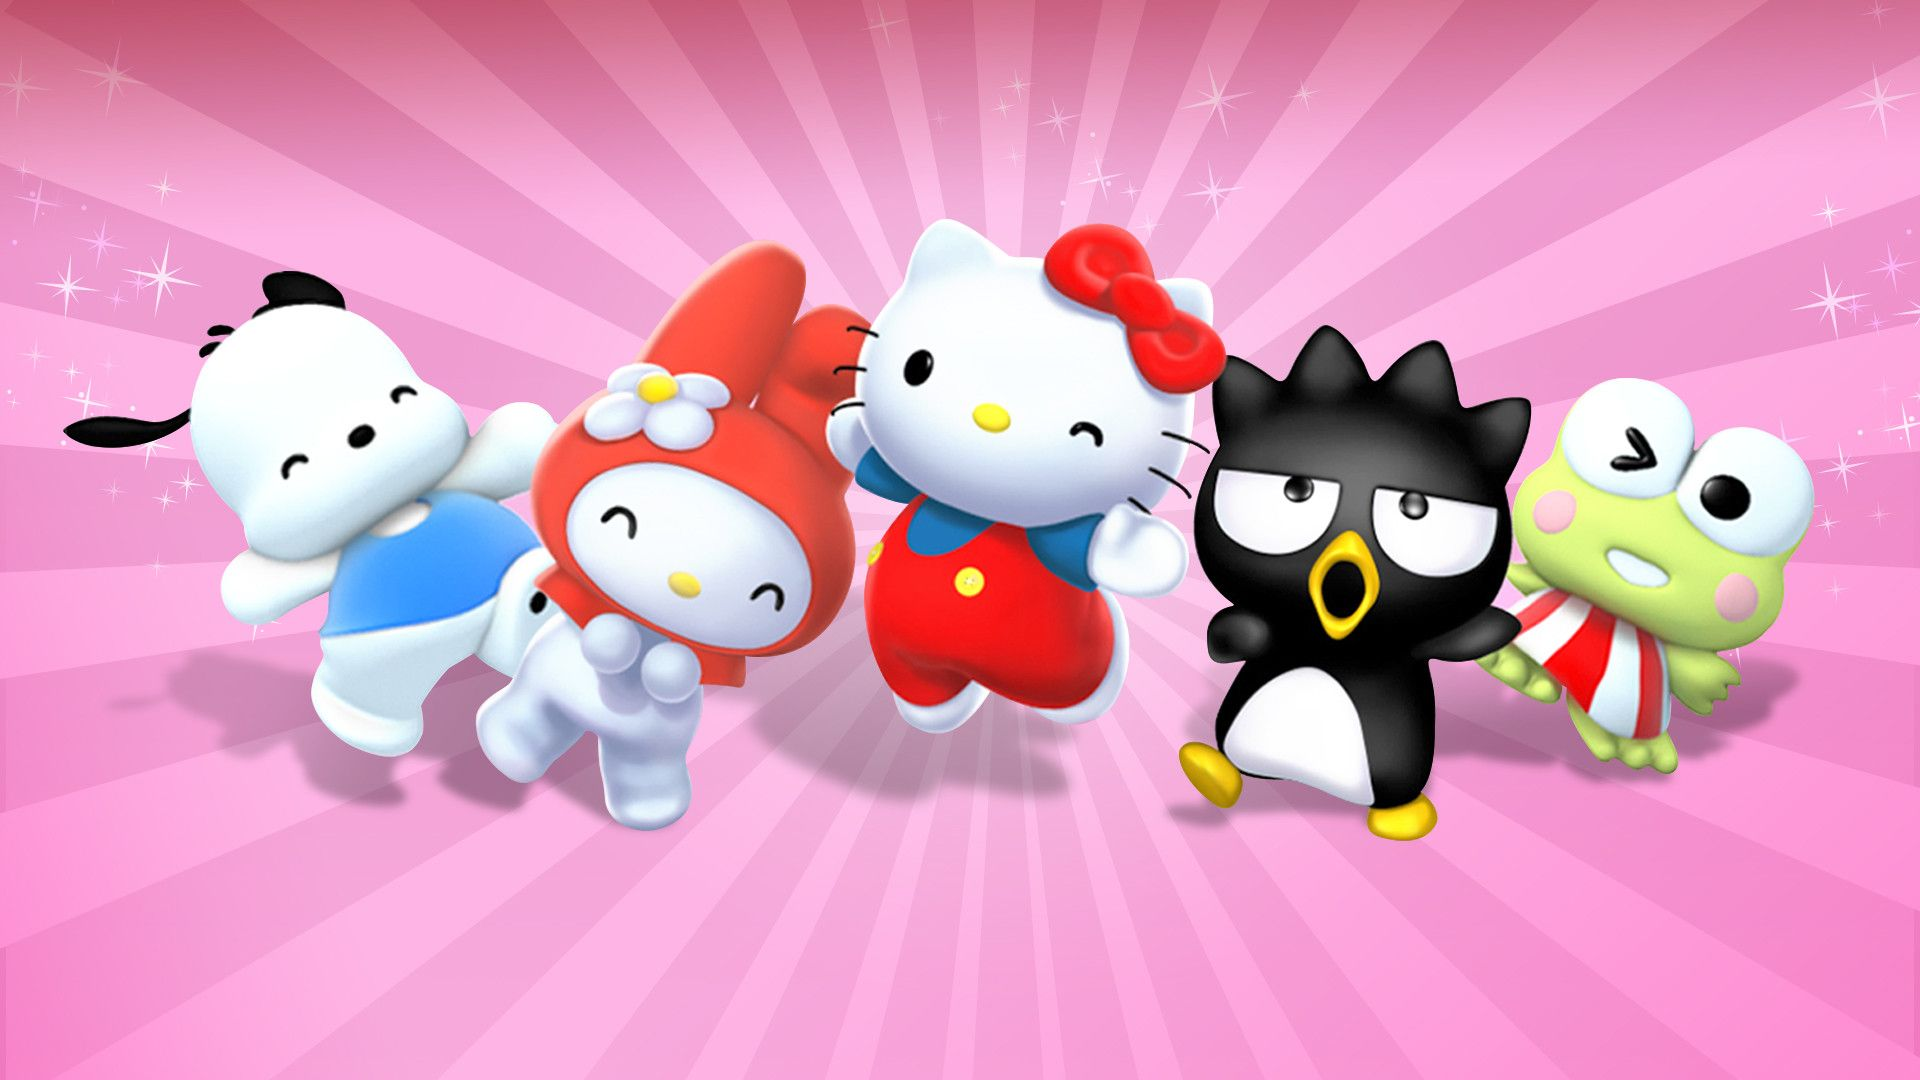 1920x1080 Hello Kitty and Friends Wallpaper (57+ images)